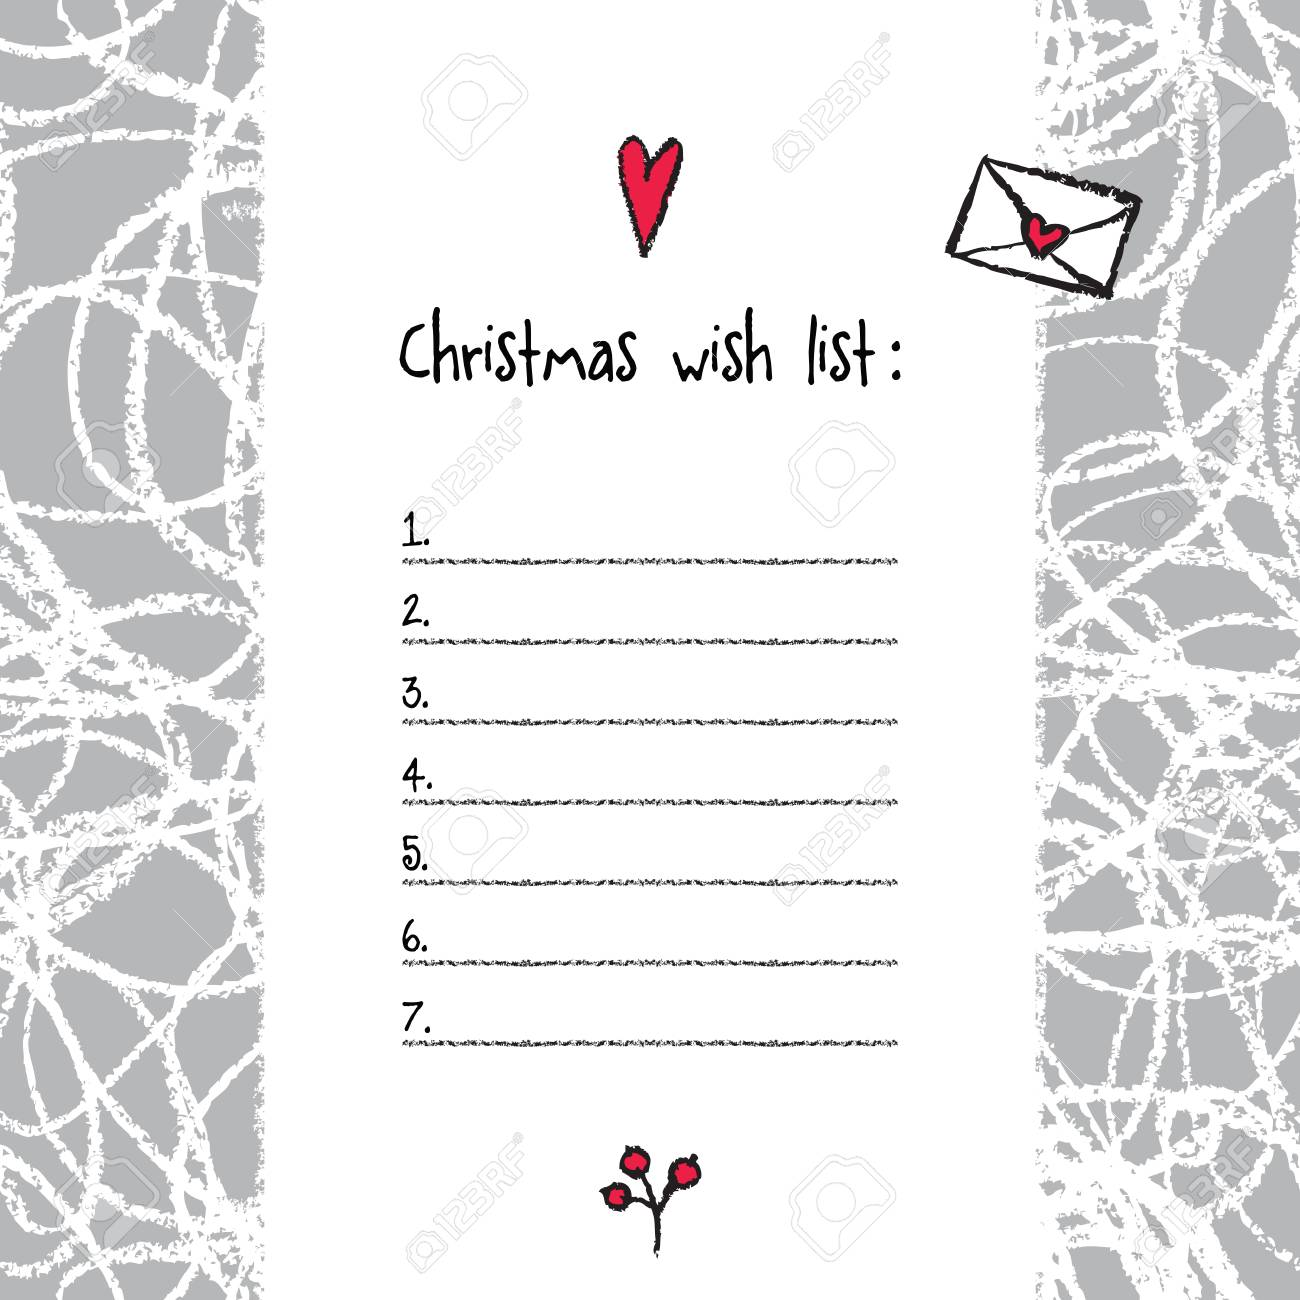 image relating to Wish List Printable named Xmas drive record template. Hand drawn supplies. Printable..